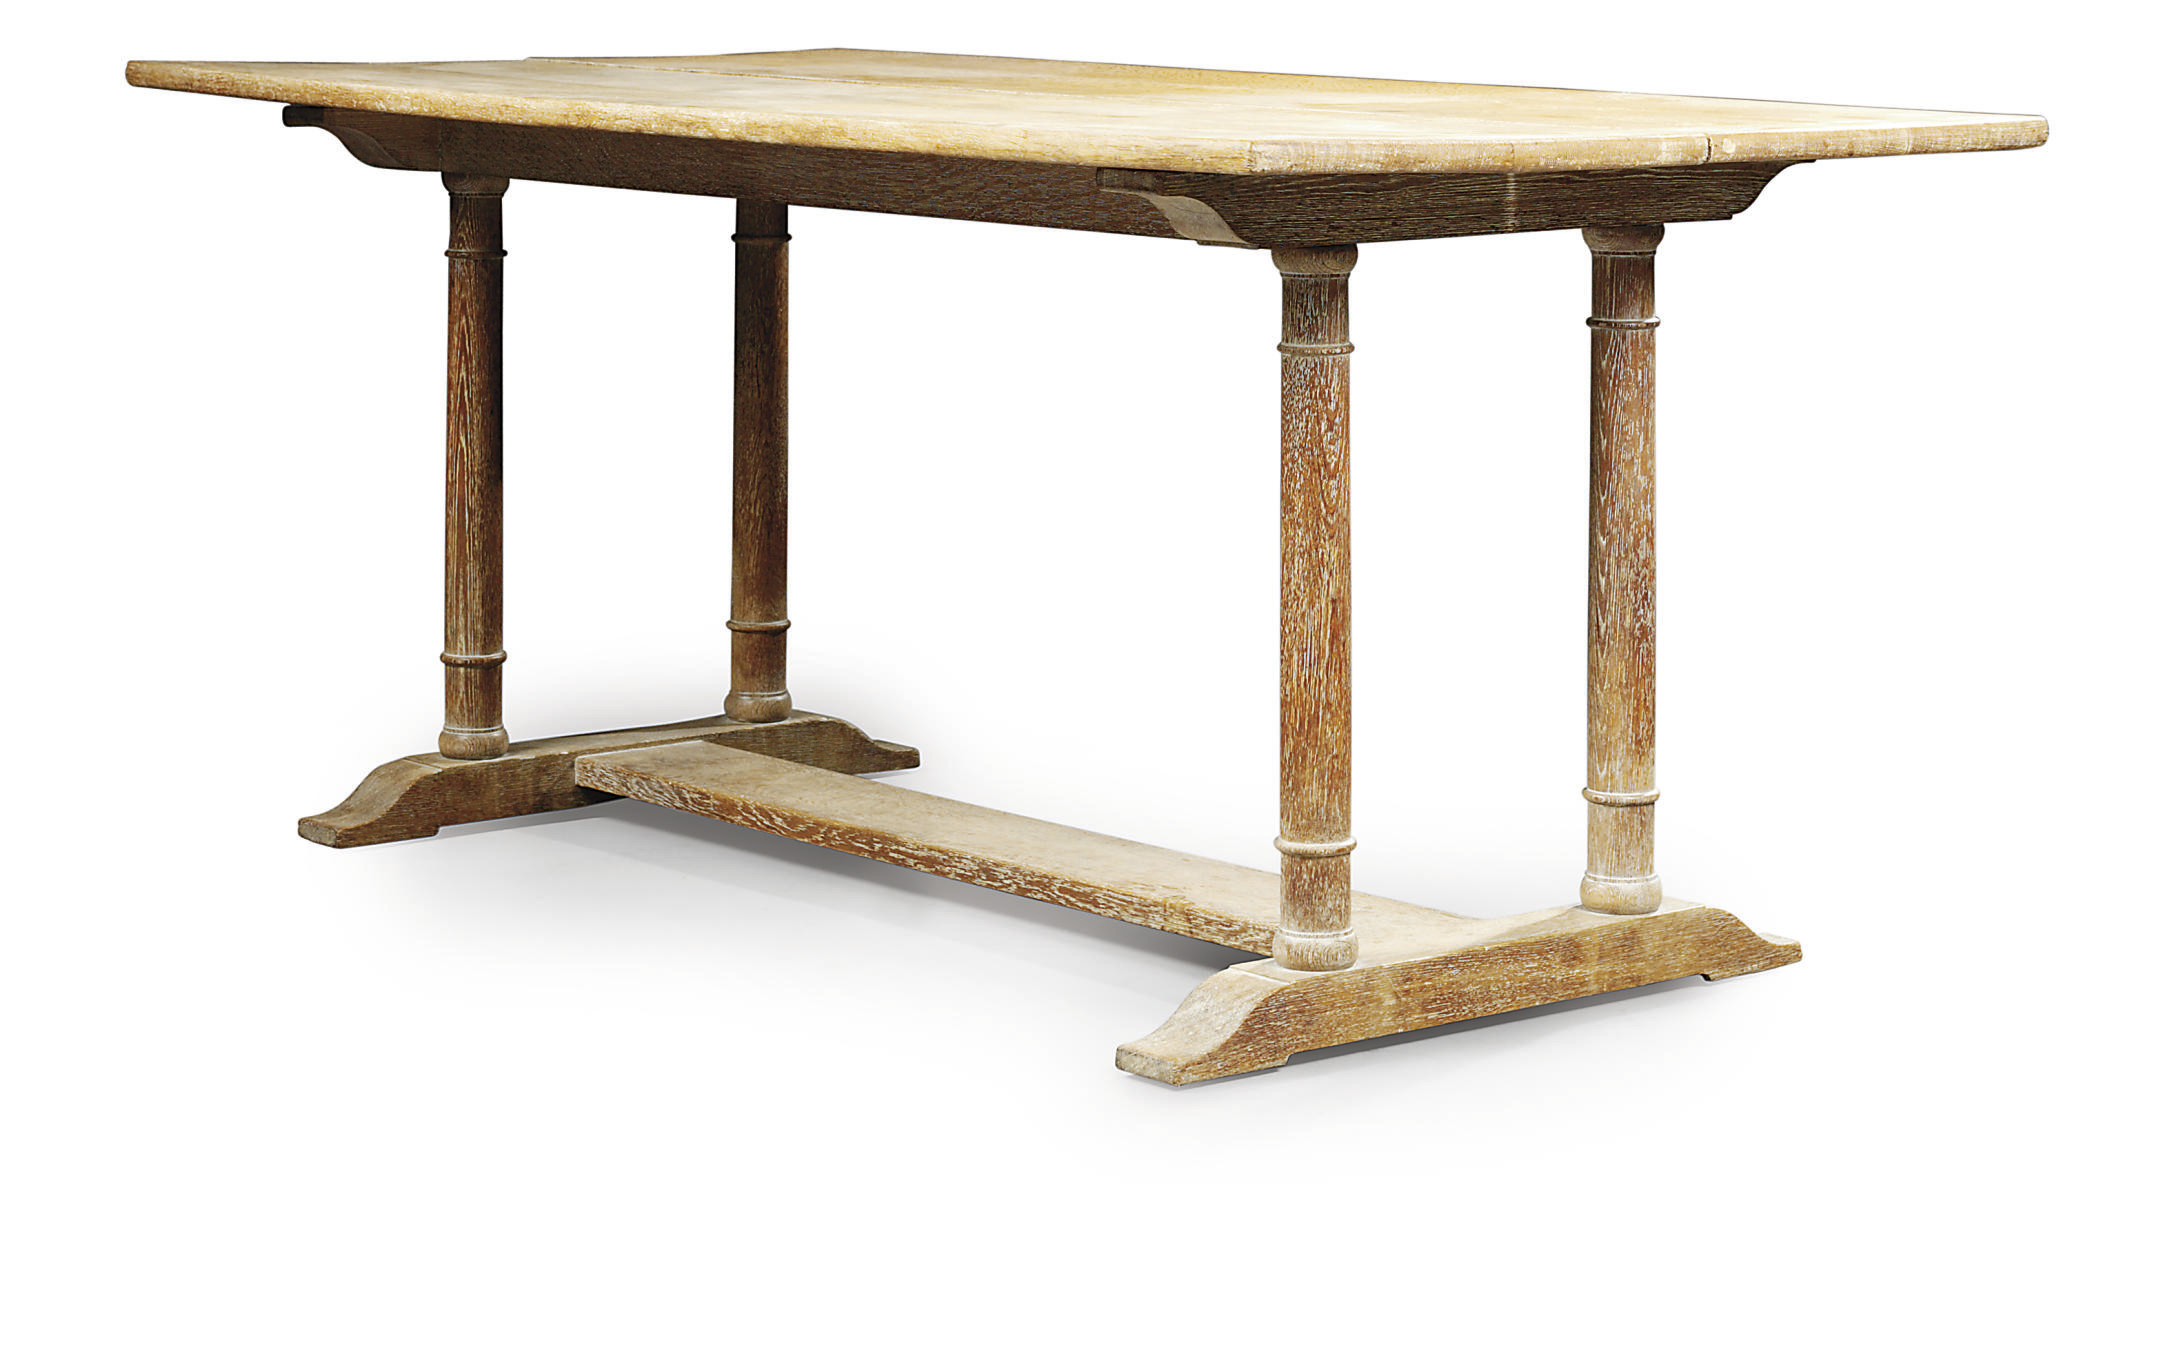 A HEAL'S LIMED OAK REFECTORY TABLE